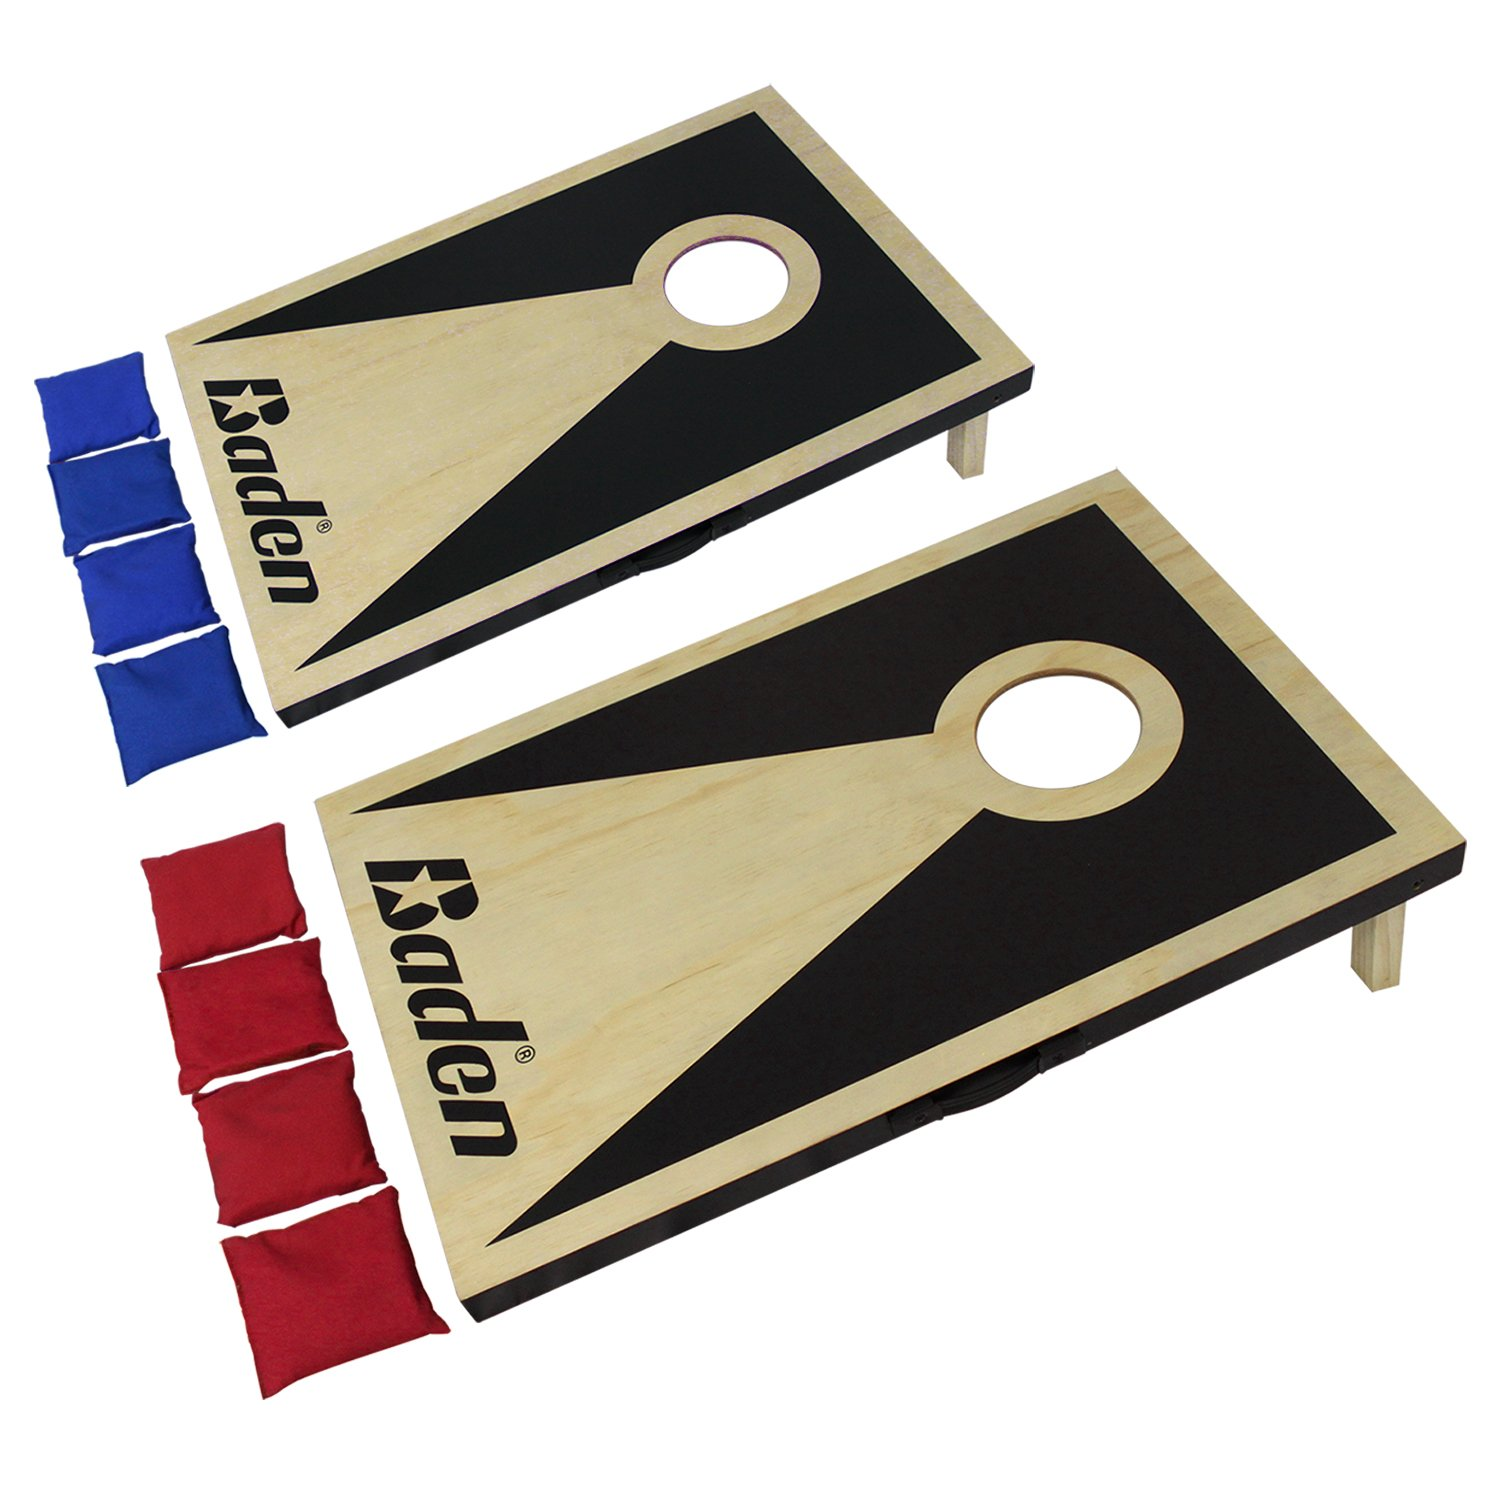 Baden Pro Cornhole Game Sets (2x3')- 1/2'' Plywood Top, Folding Legs, Carry Handles, 8 Bean Bags, Built-in Bag Storage by Baden